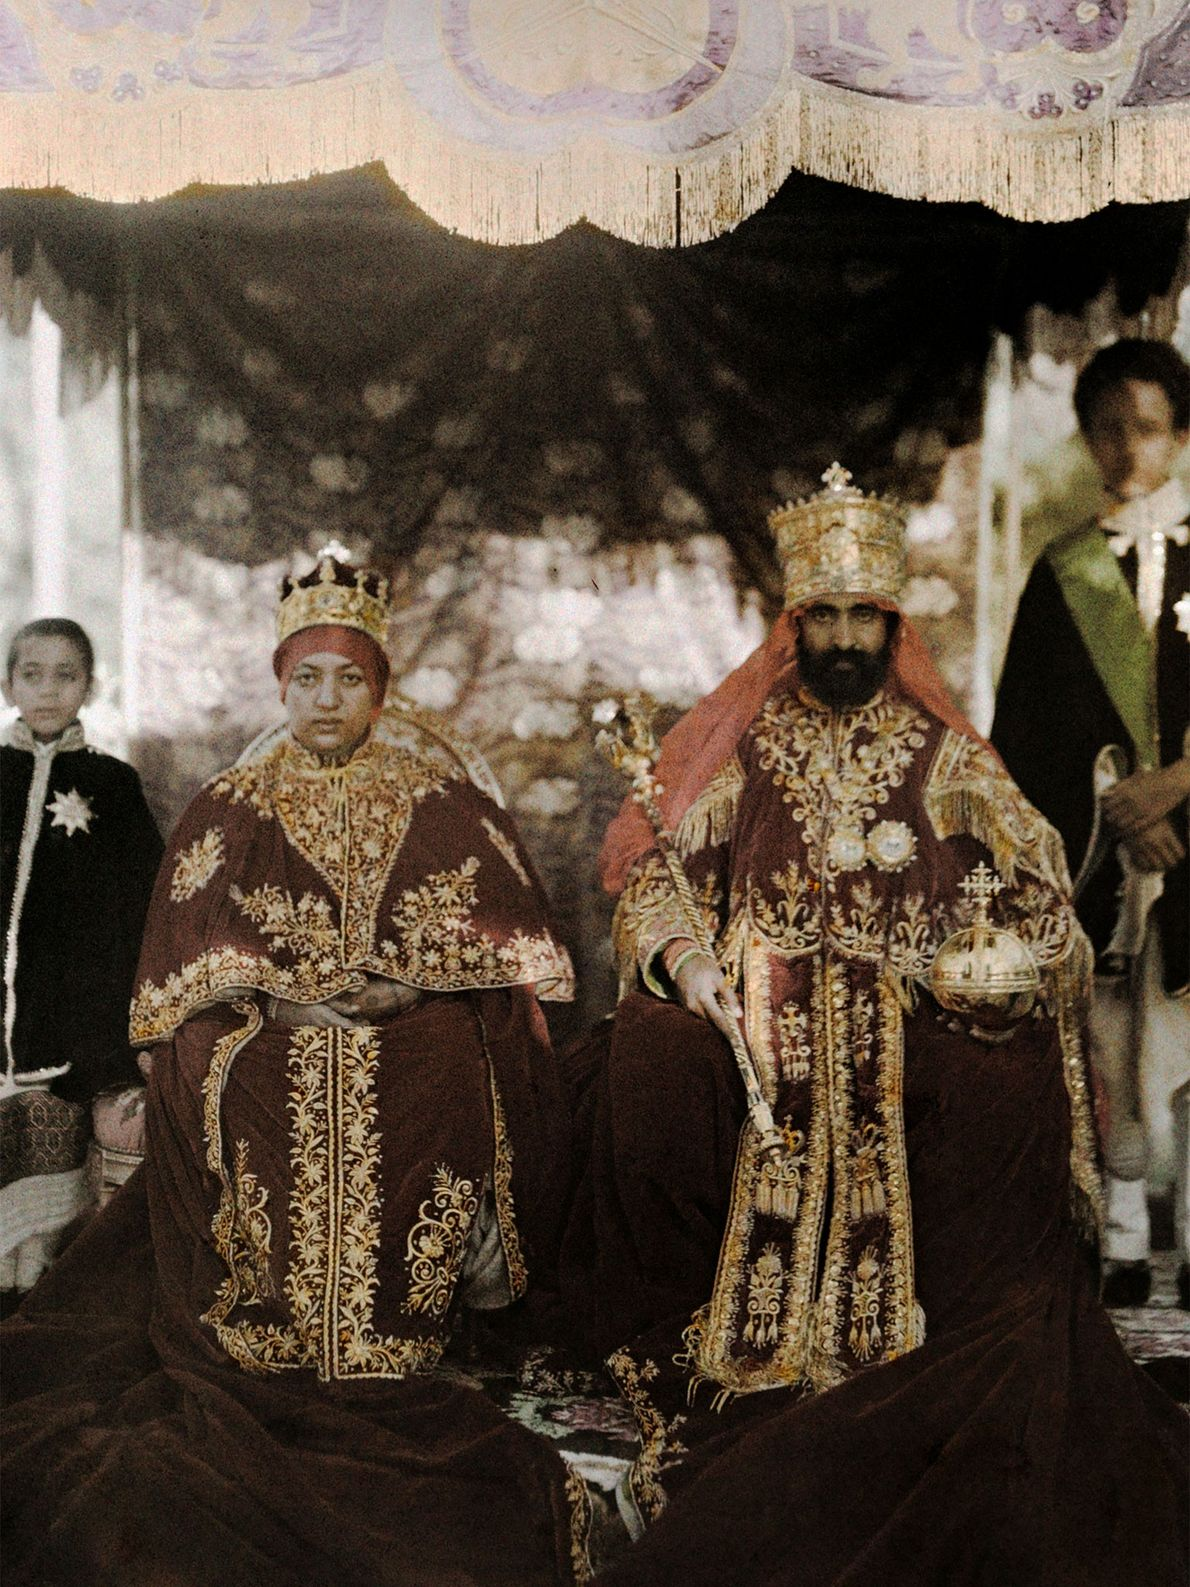 Emperor Haile Selassie I and Empress Menen Asfaw pose in their robes in Ethiopia. Haile Selassie's ...